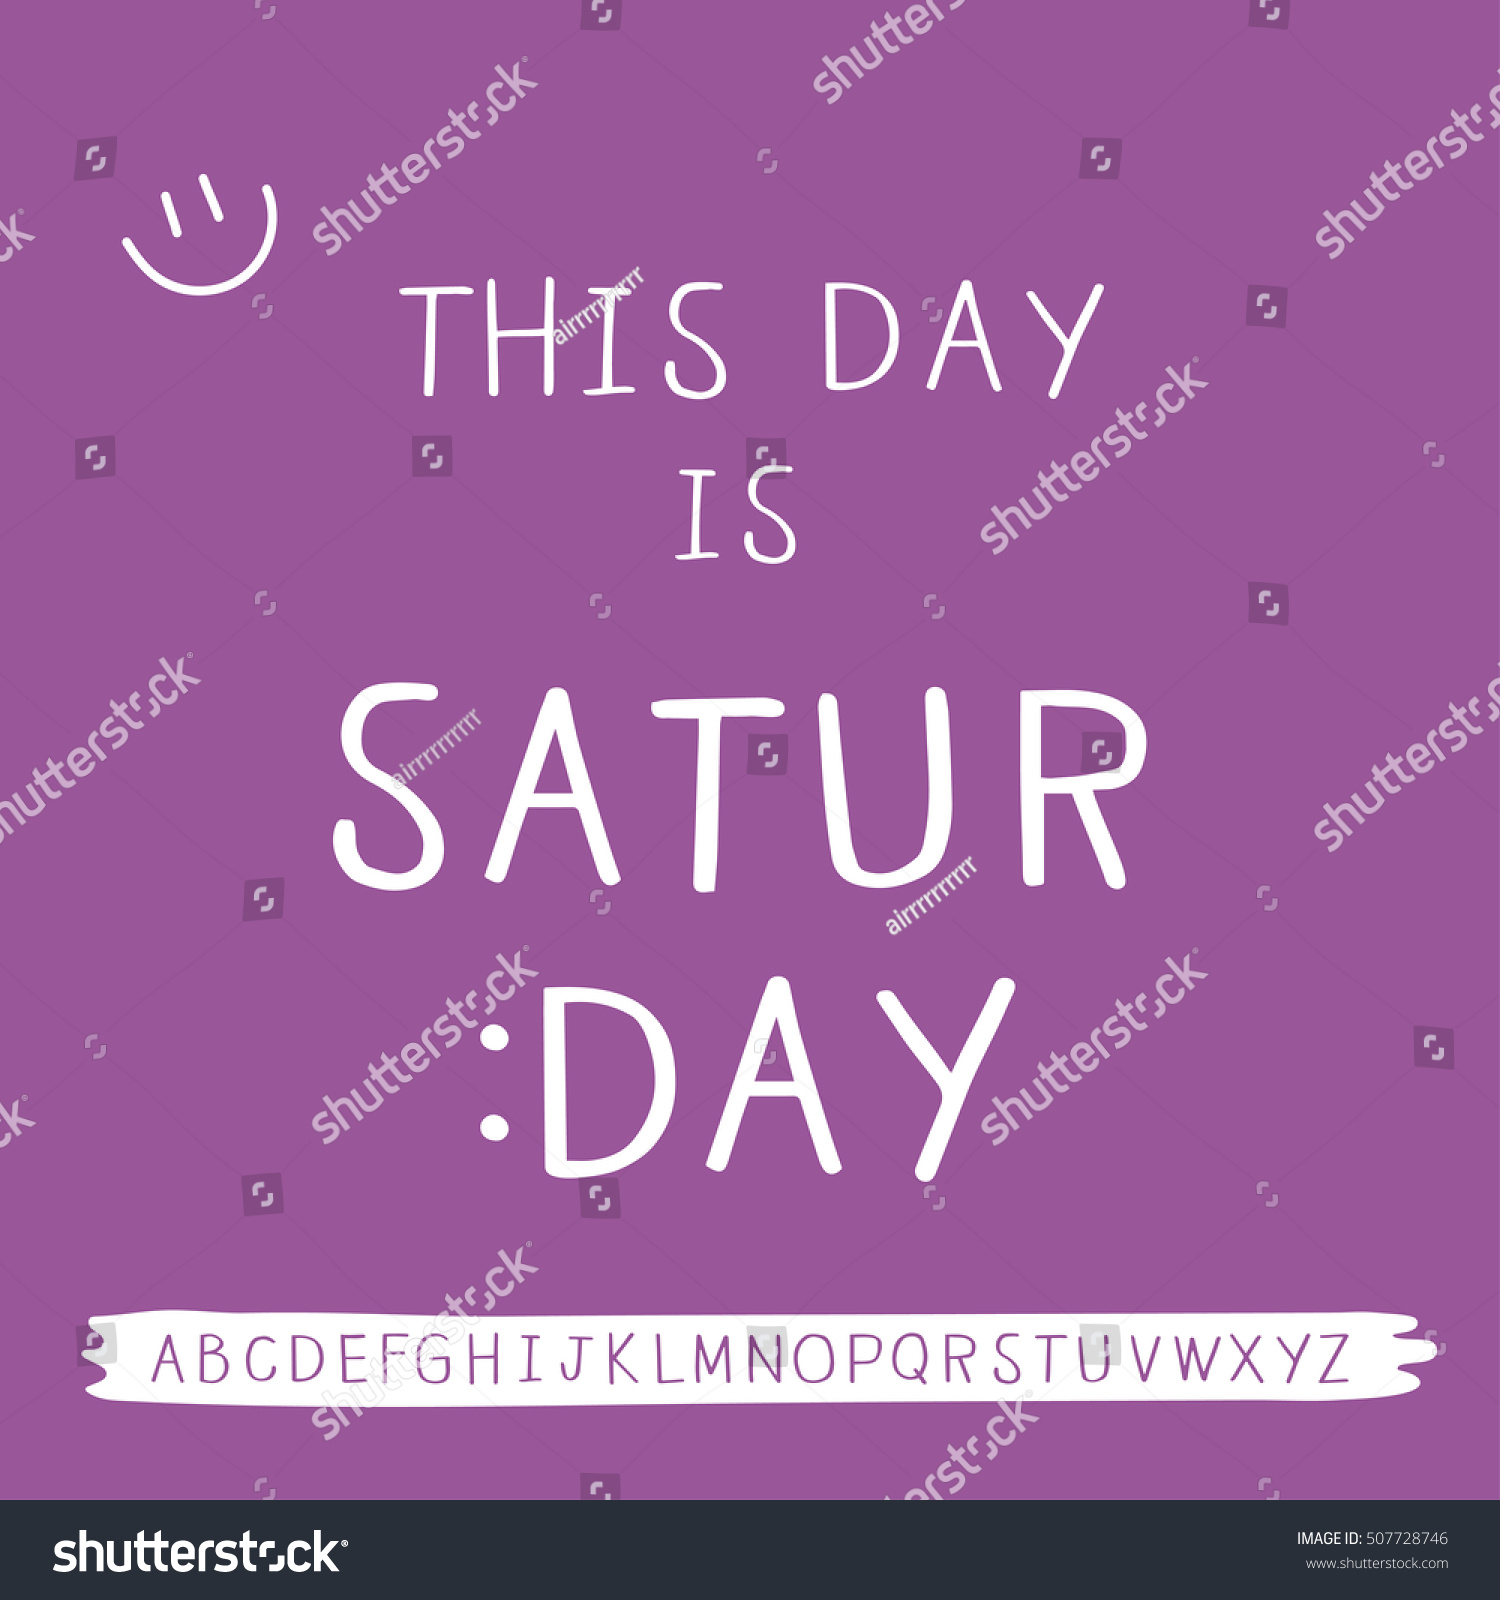 Saturday Quotes Saturday Quotes Freehand Font Stock Vector 507728746  Shutterstock